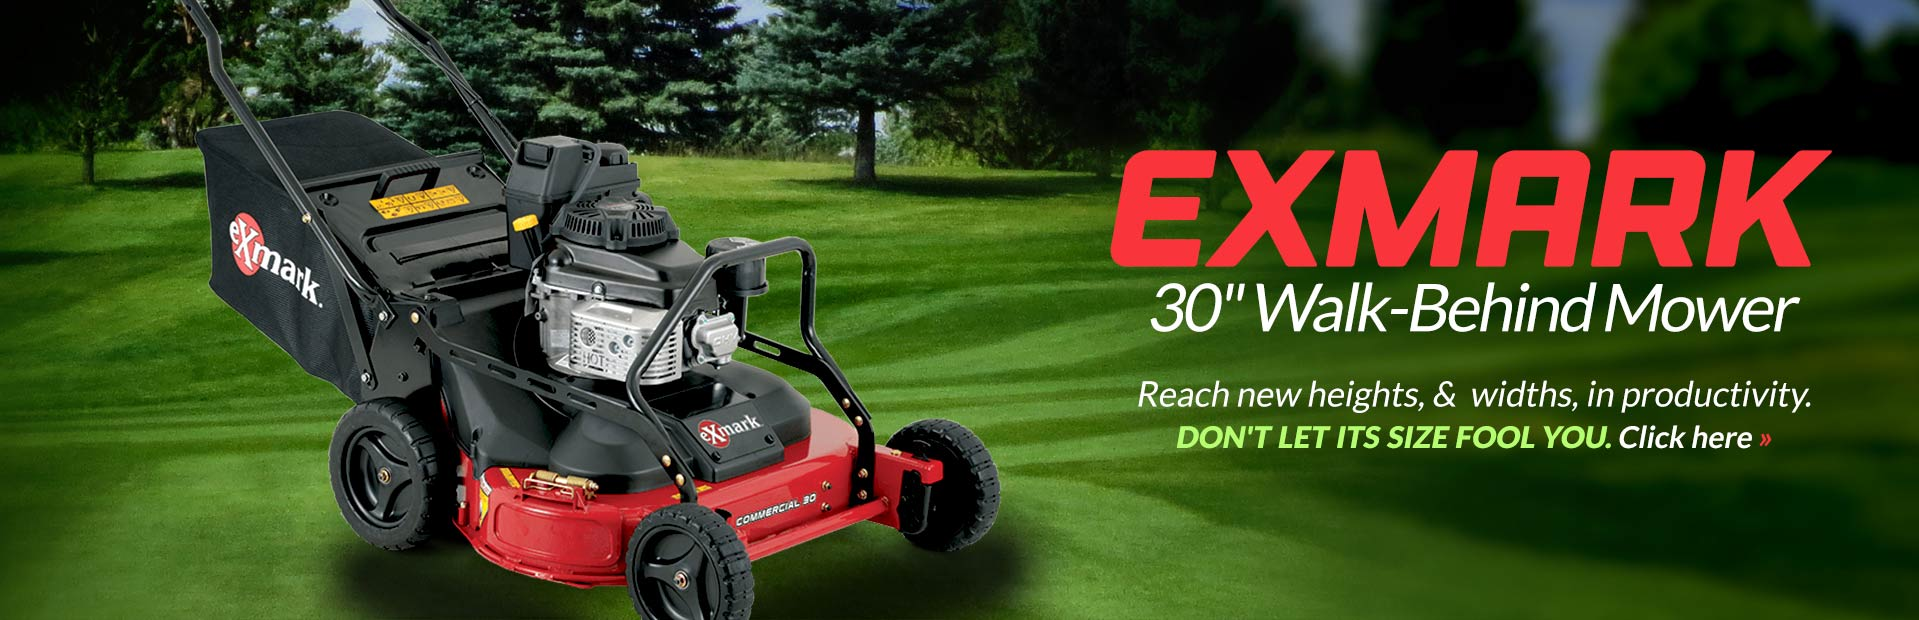 Exmark 30-Inch Walk-Behind Mower: Click here to view the model.